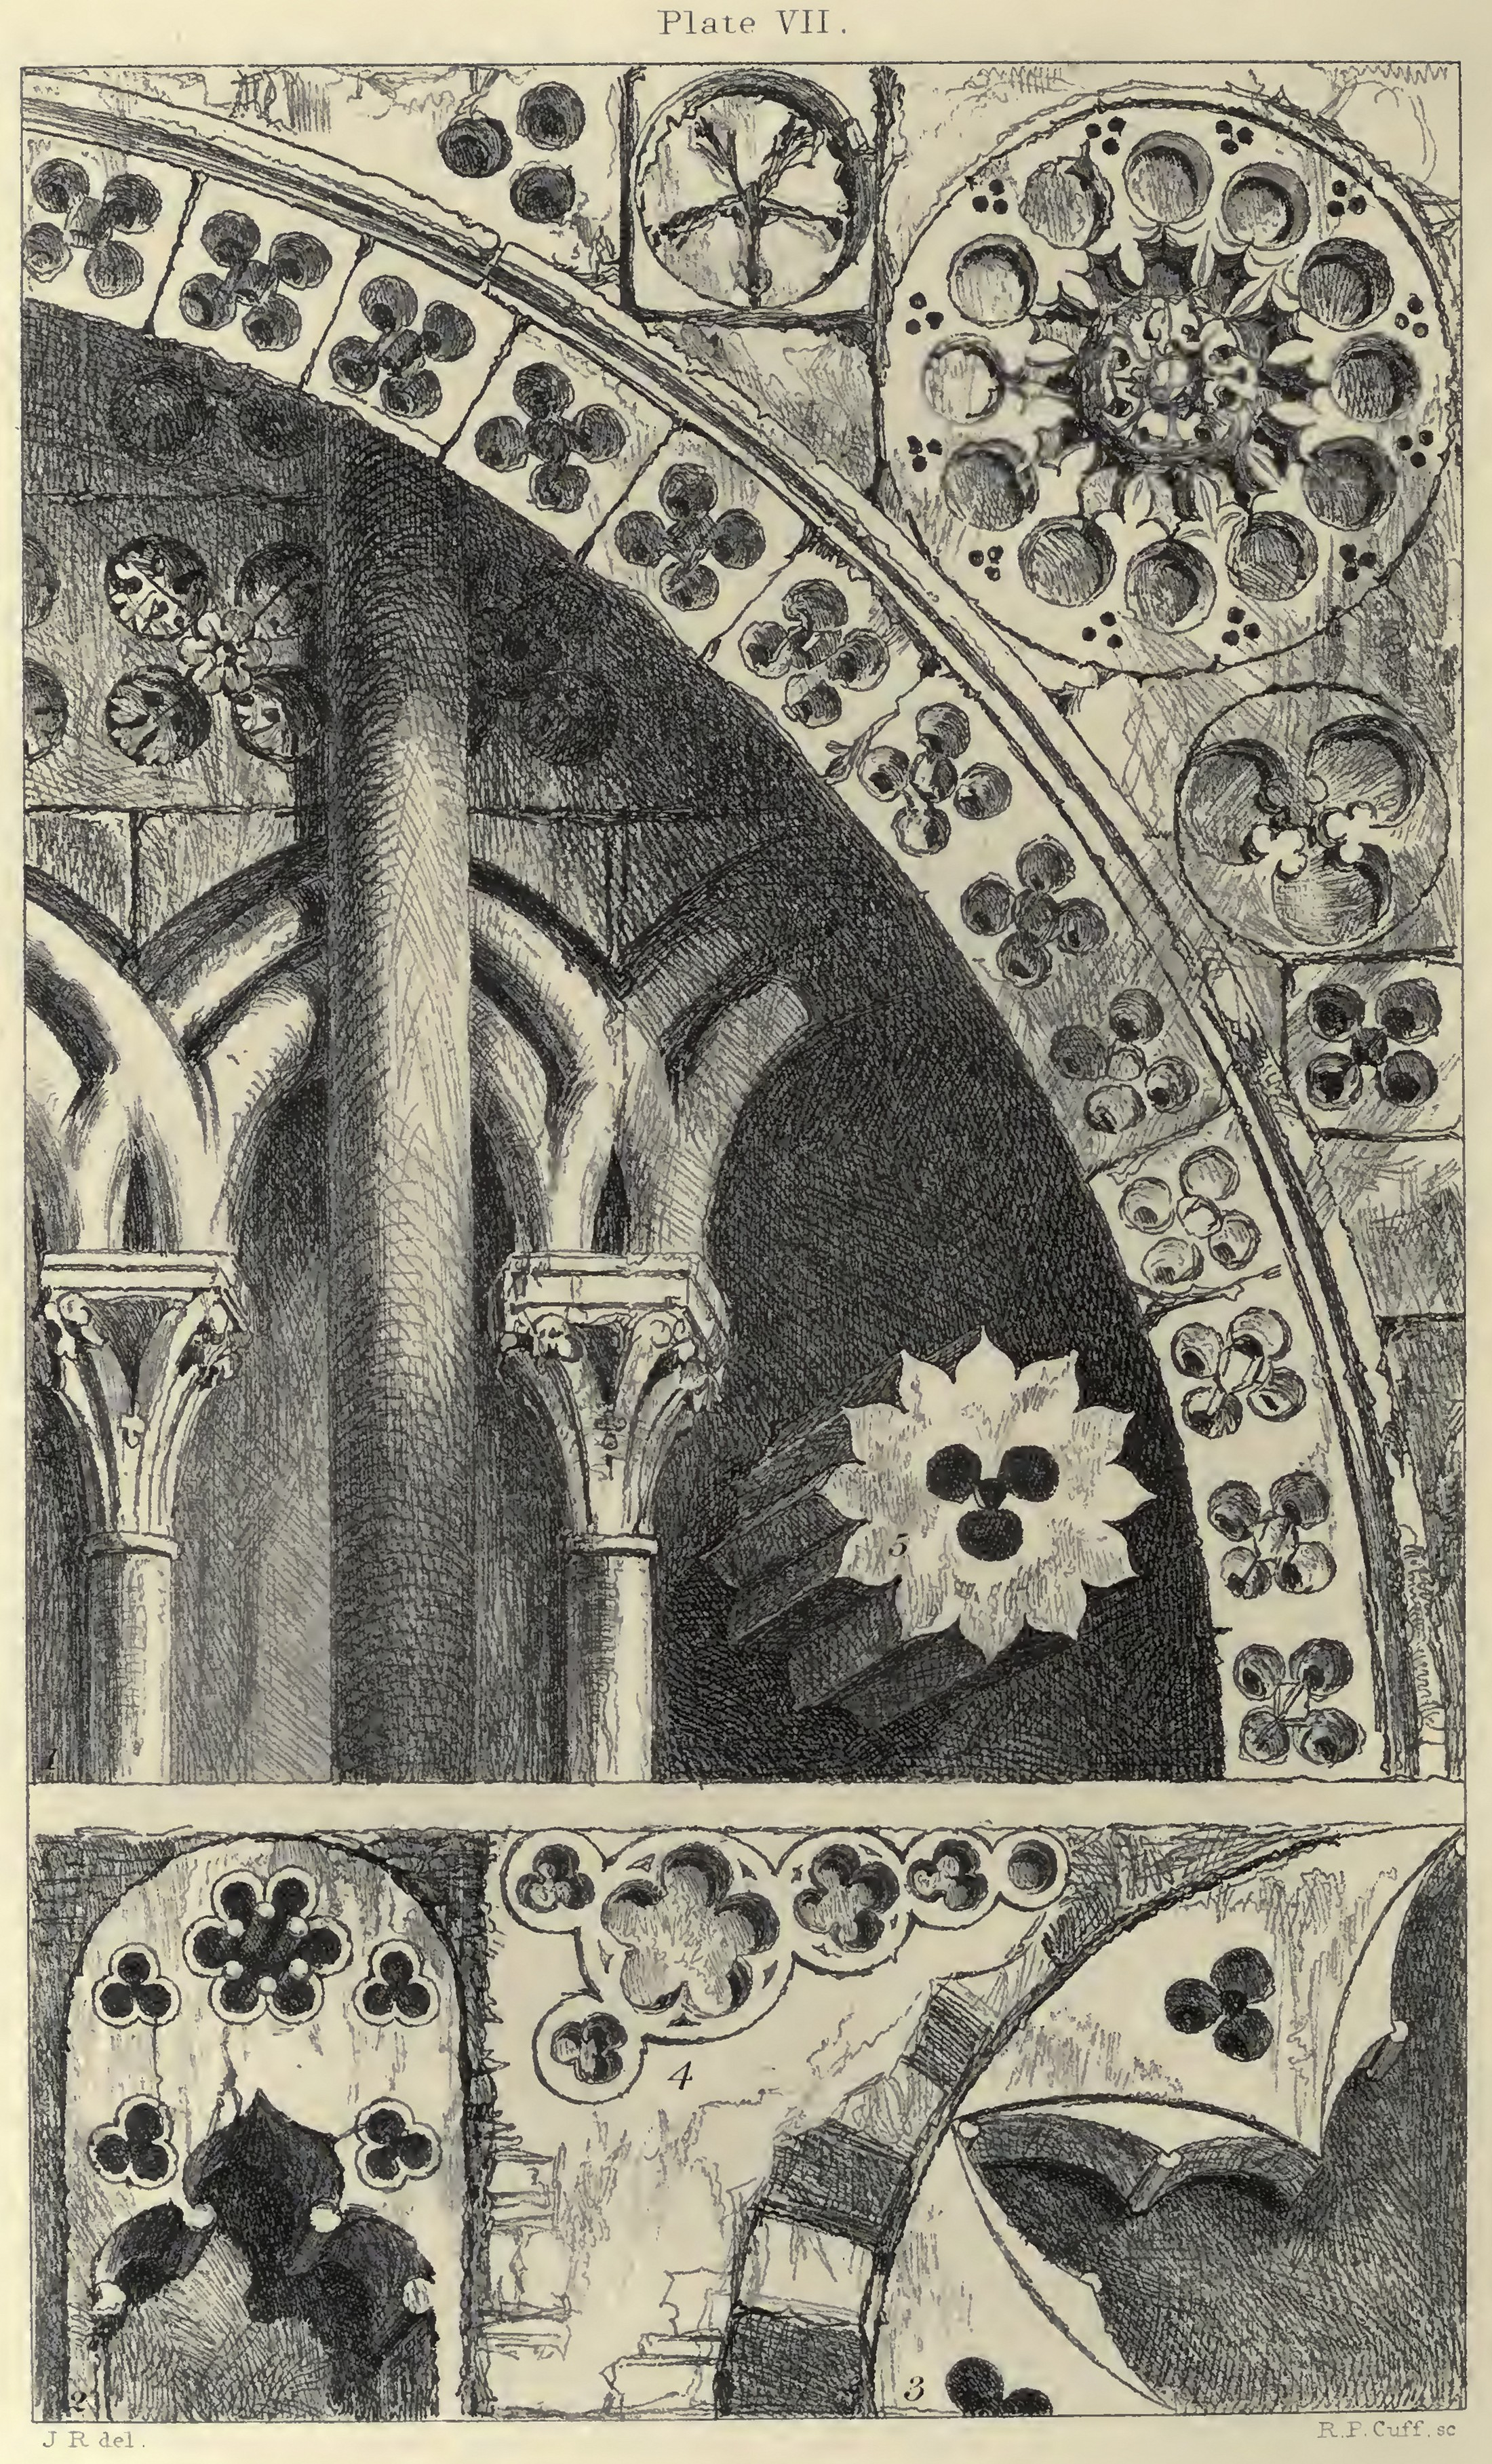 VII. Pierced Ornaments from Lisieux, Bayeux, Verona, and Padua